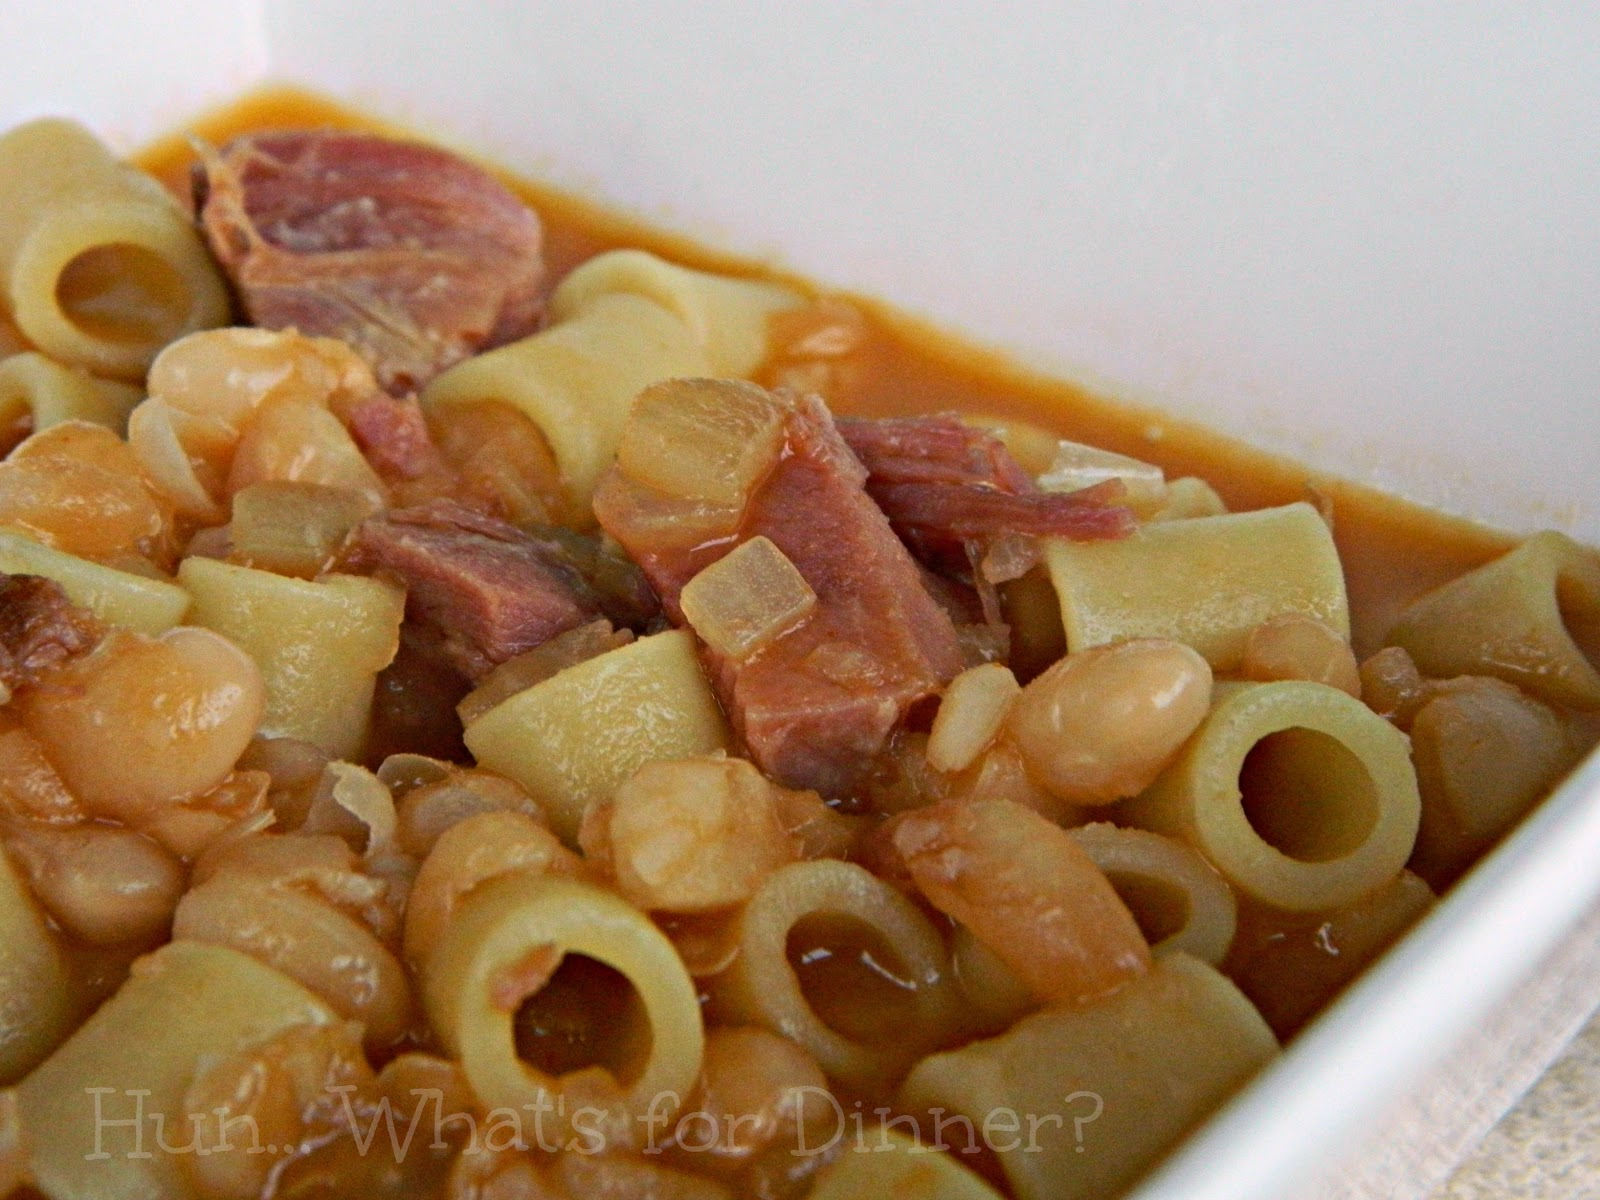 Hun... What's for Dinner?: Pasta Fagioli- A simple twist on a traditional Italian Ham and Bean soup.